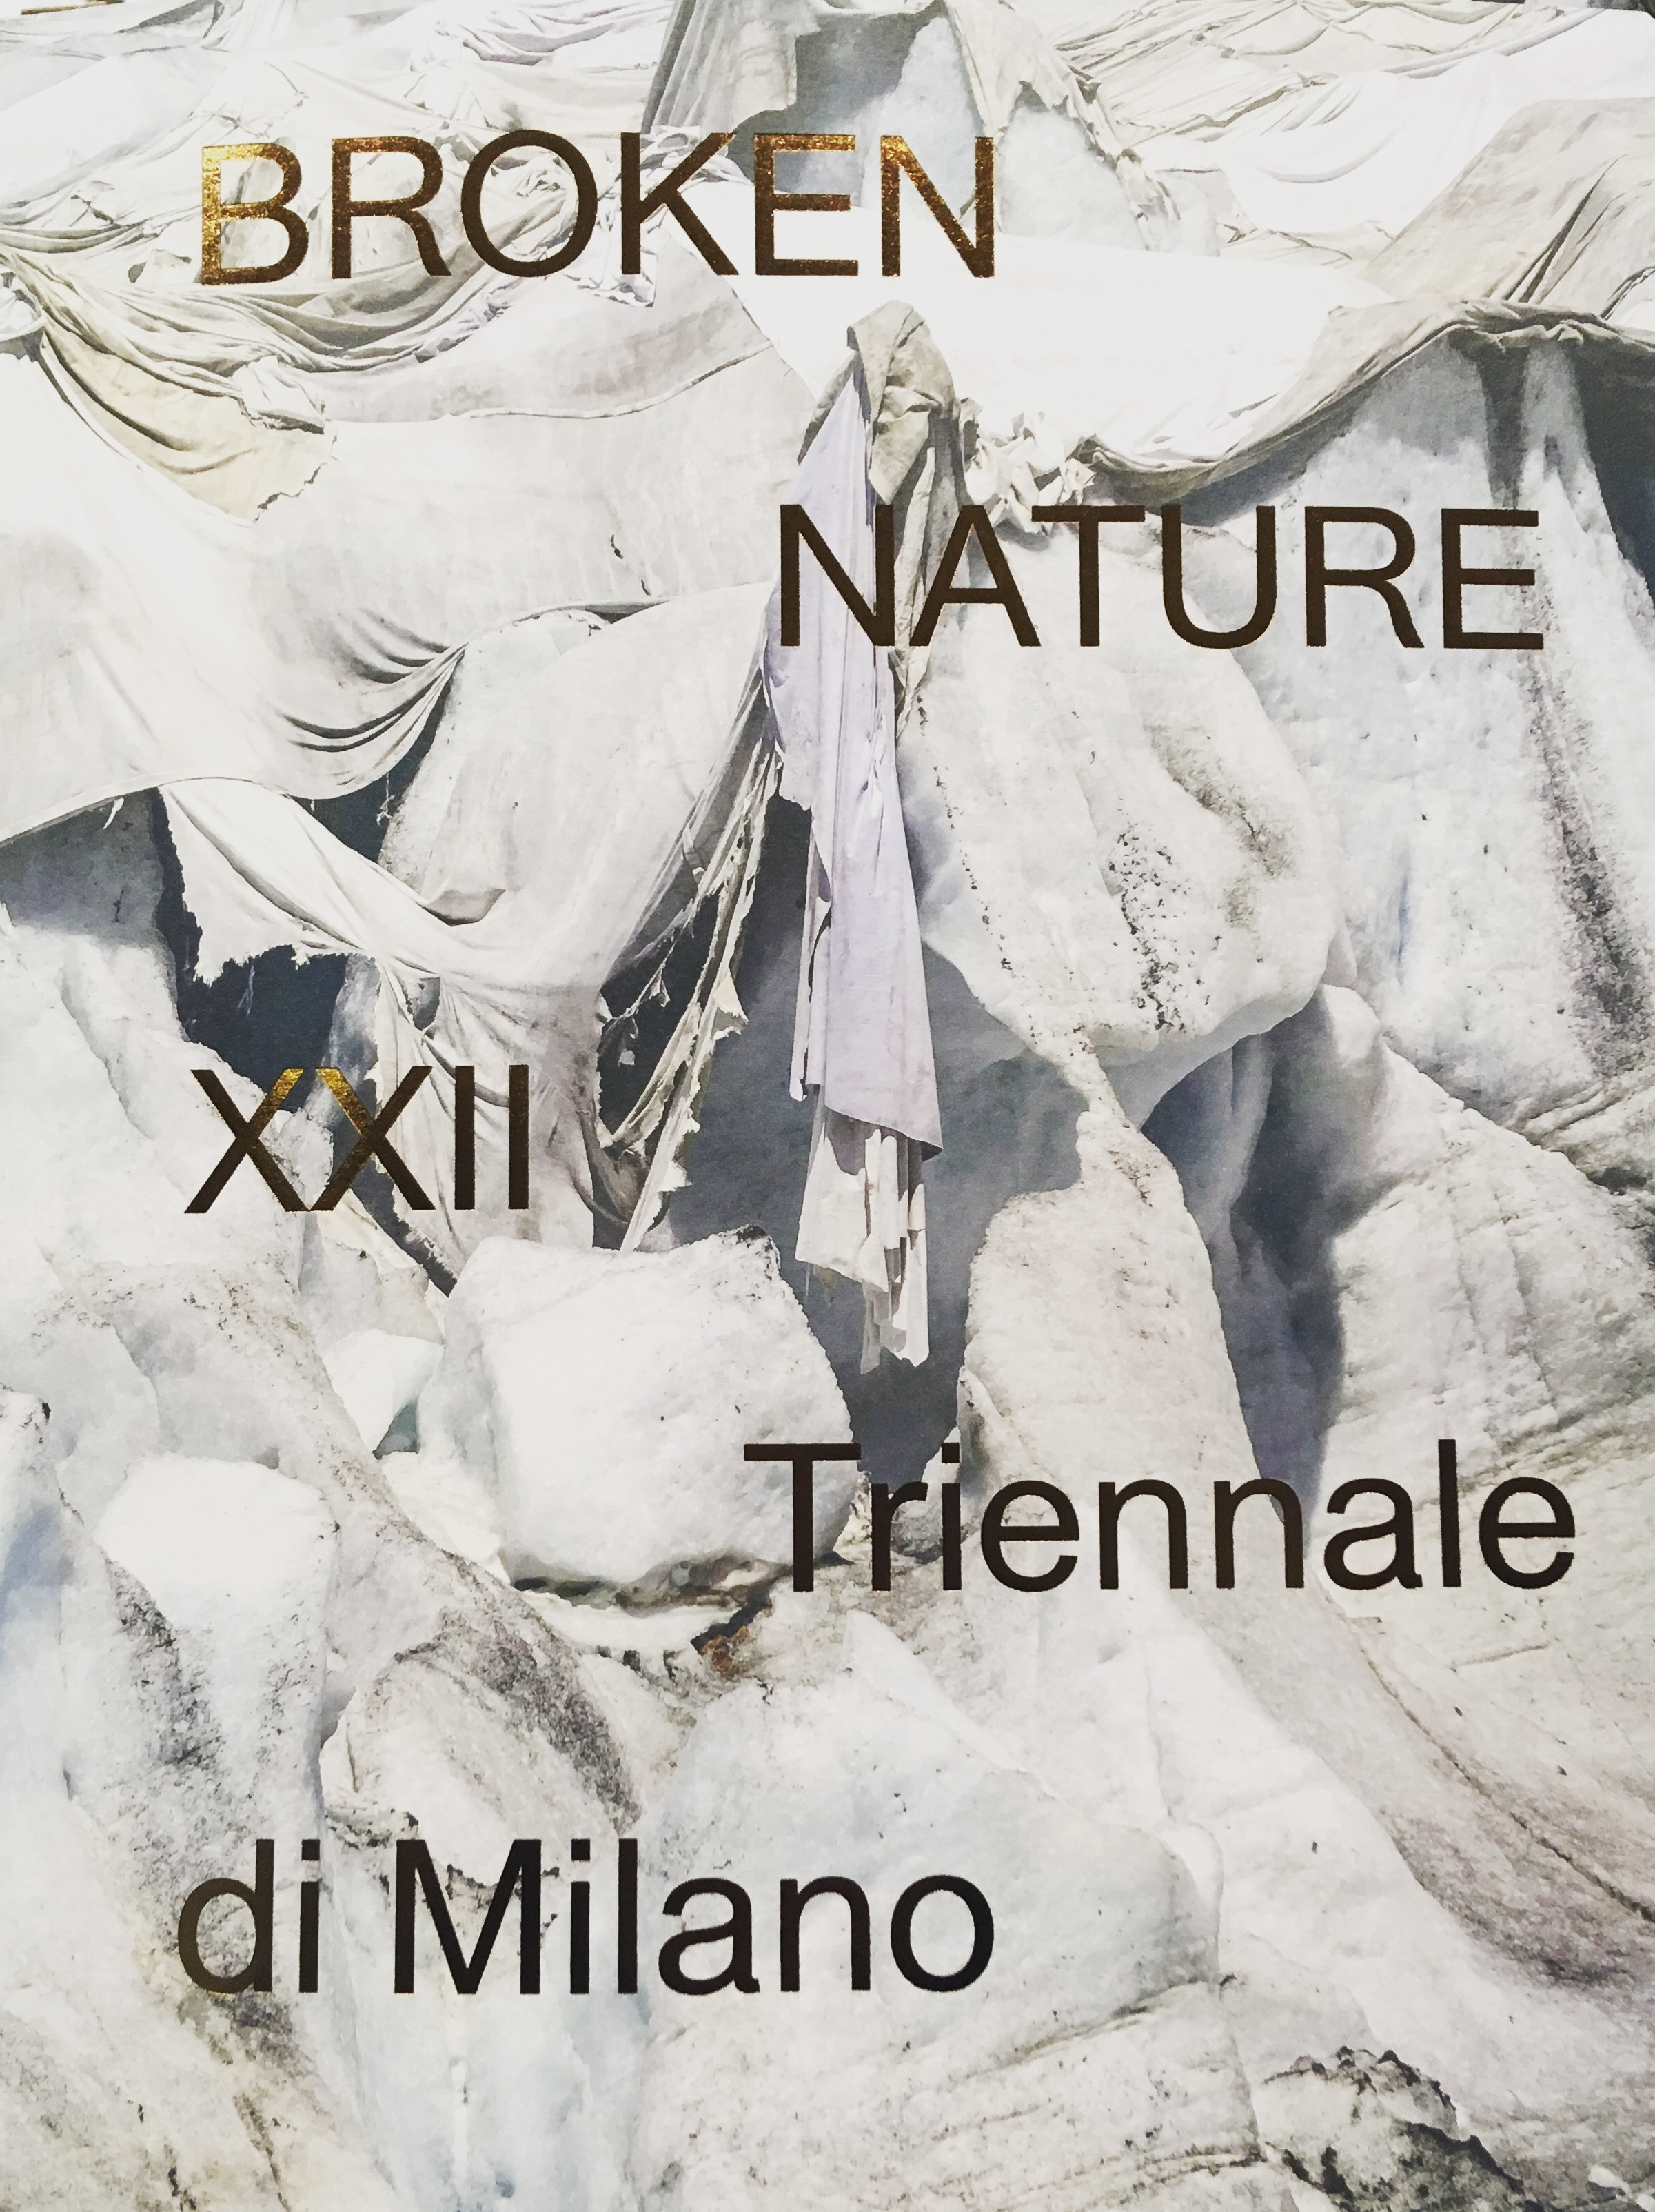 Broken Nature, XXII International Exhibition Triennale di Milano, 2019, curated by Paola Antonelli